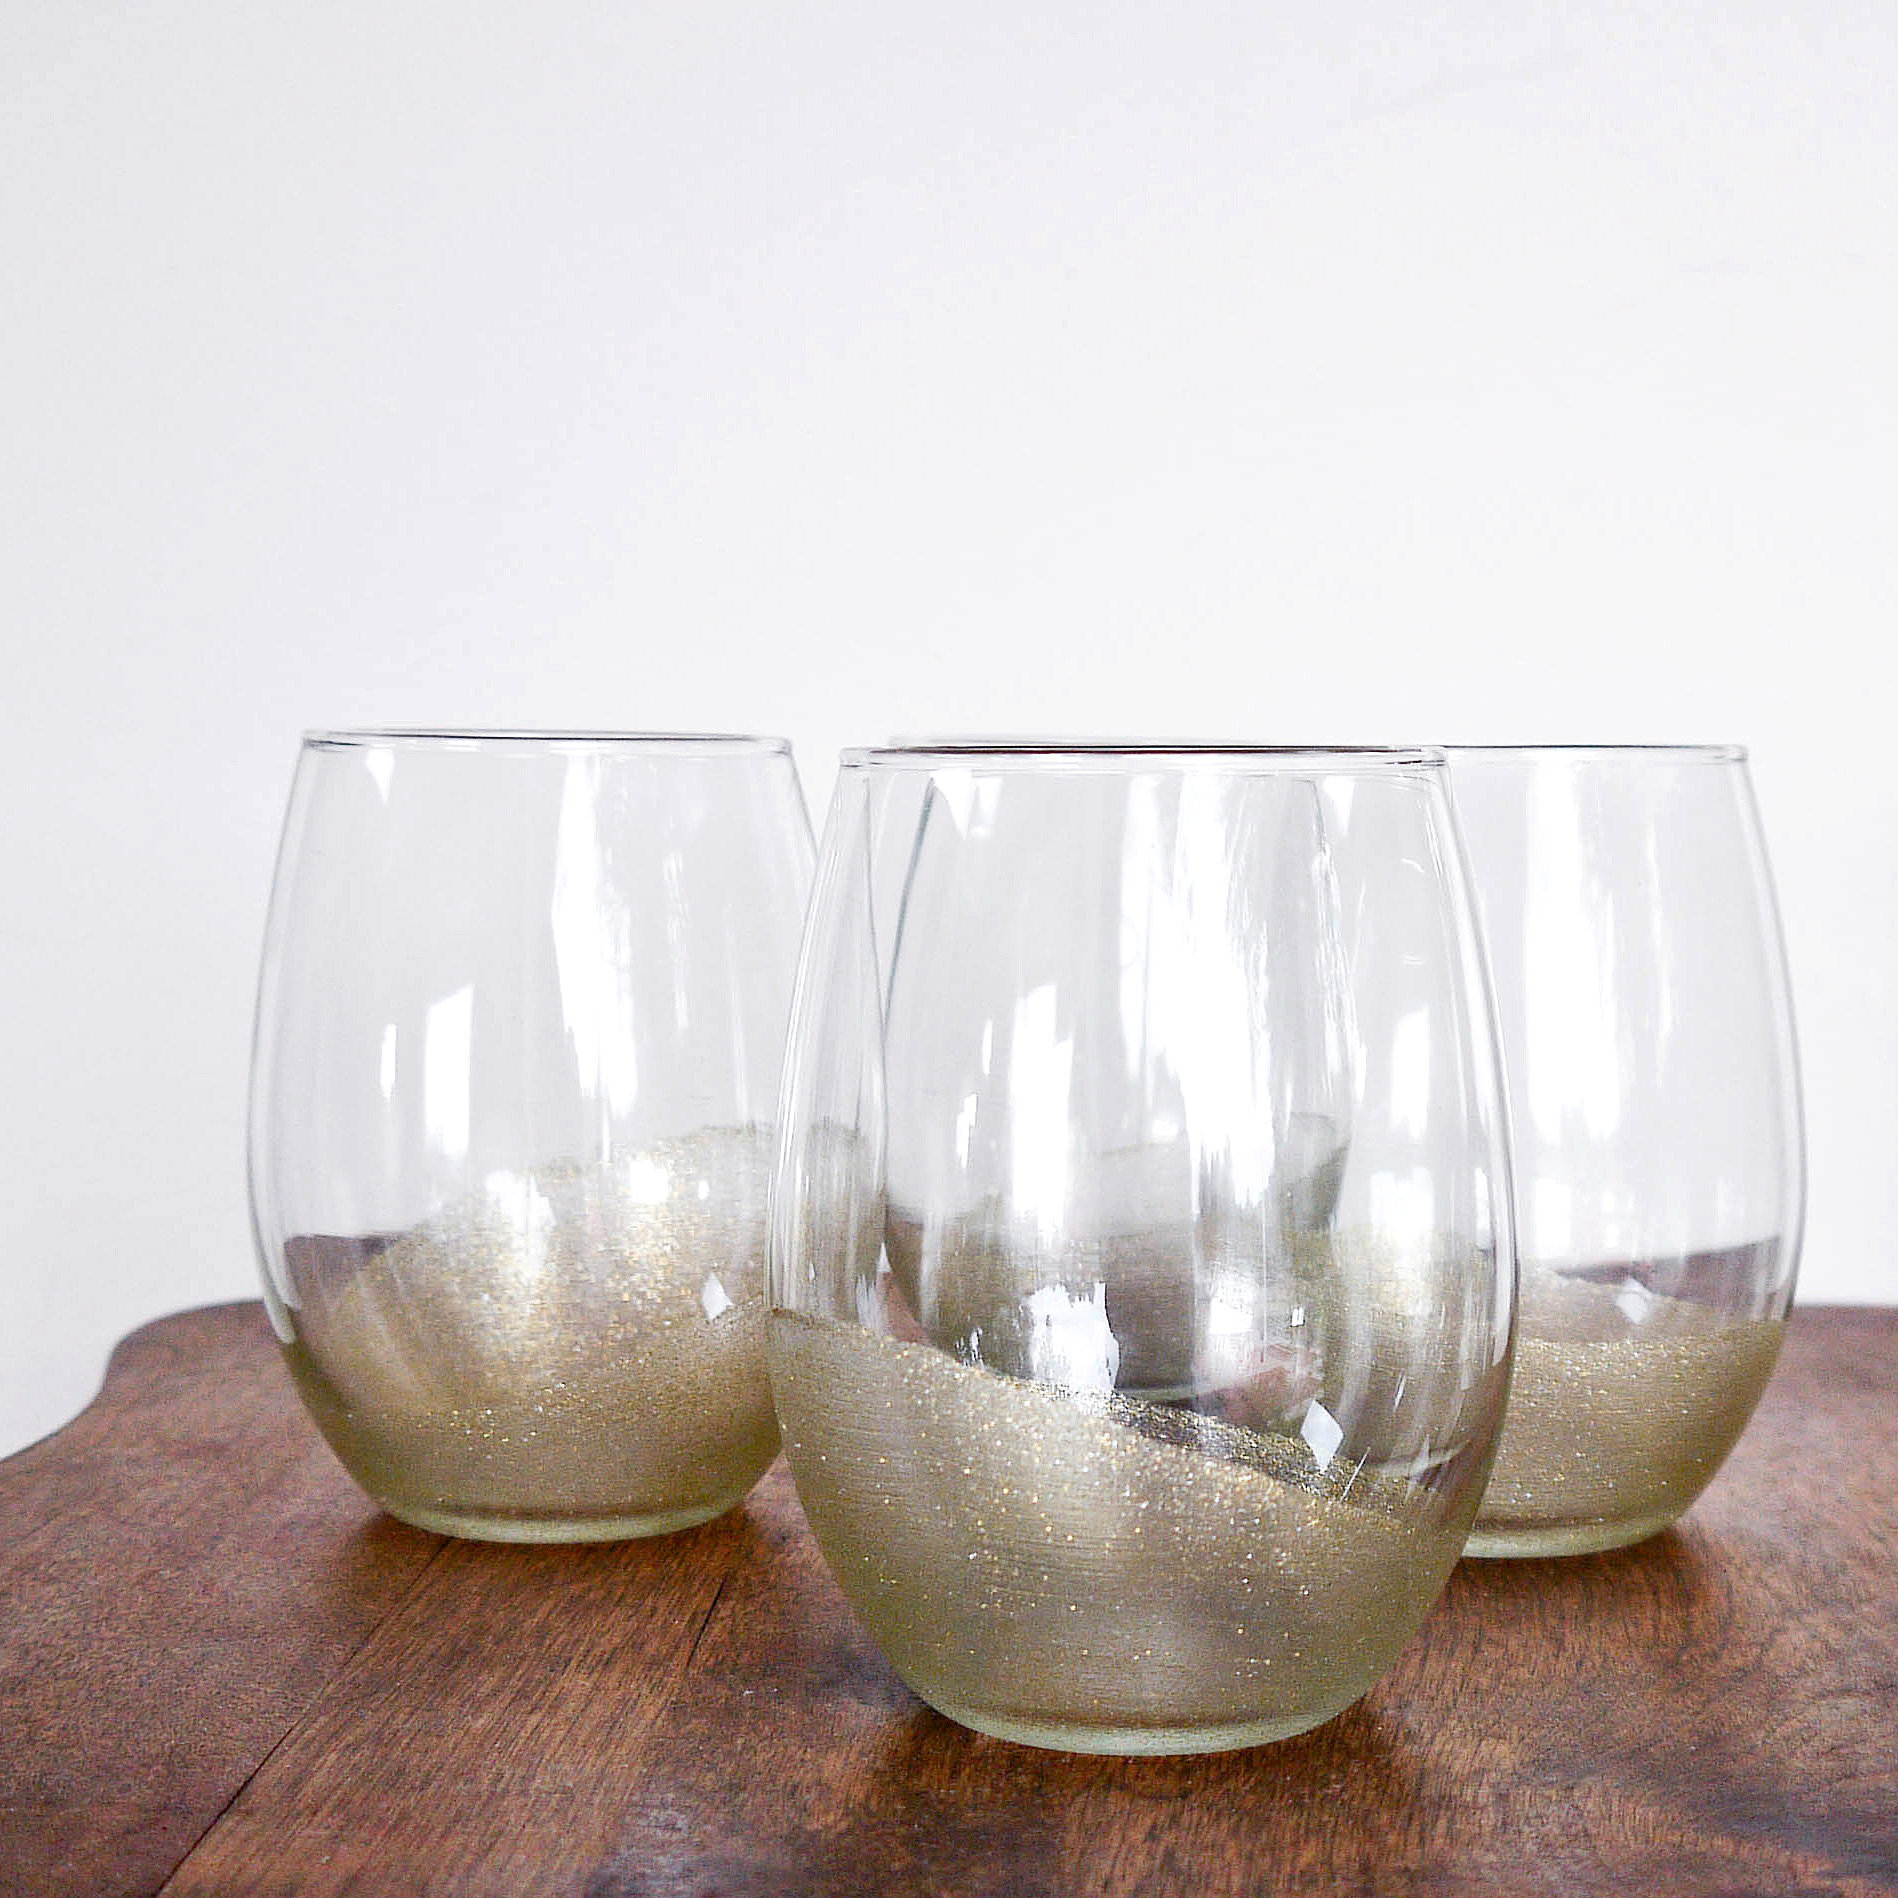 Glitter painted glasses popsugar smart living for Type of paint to use on wine glasses